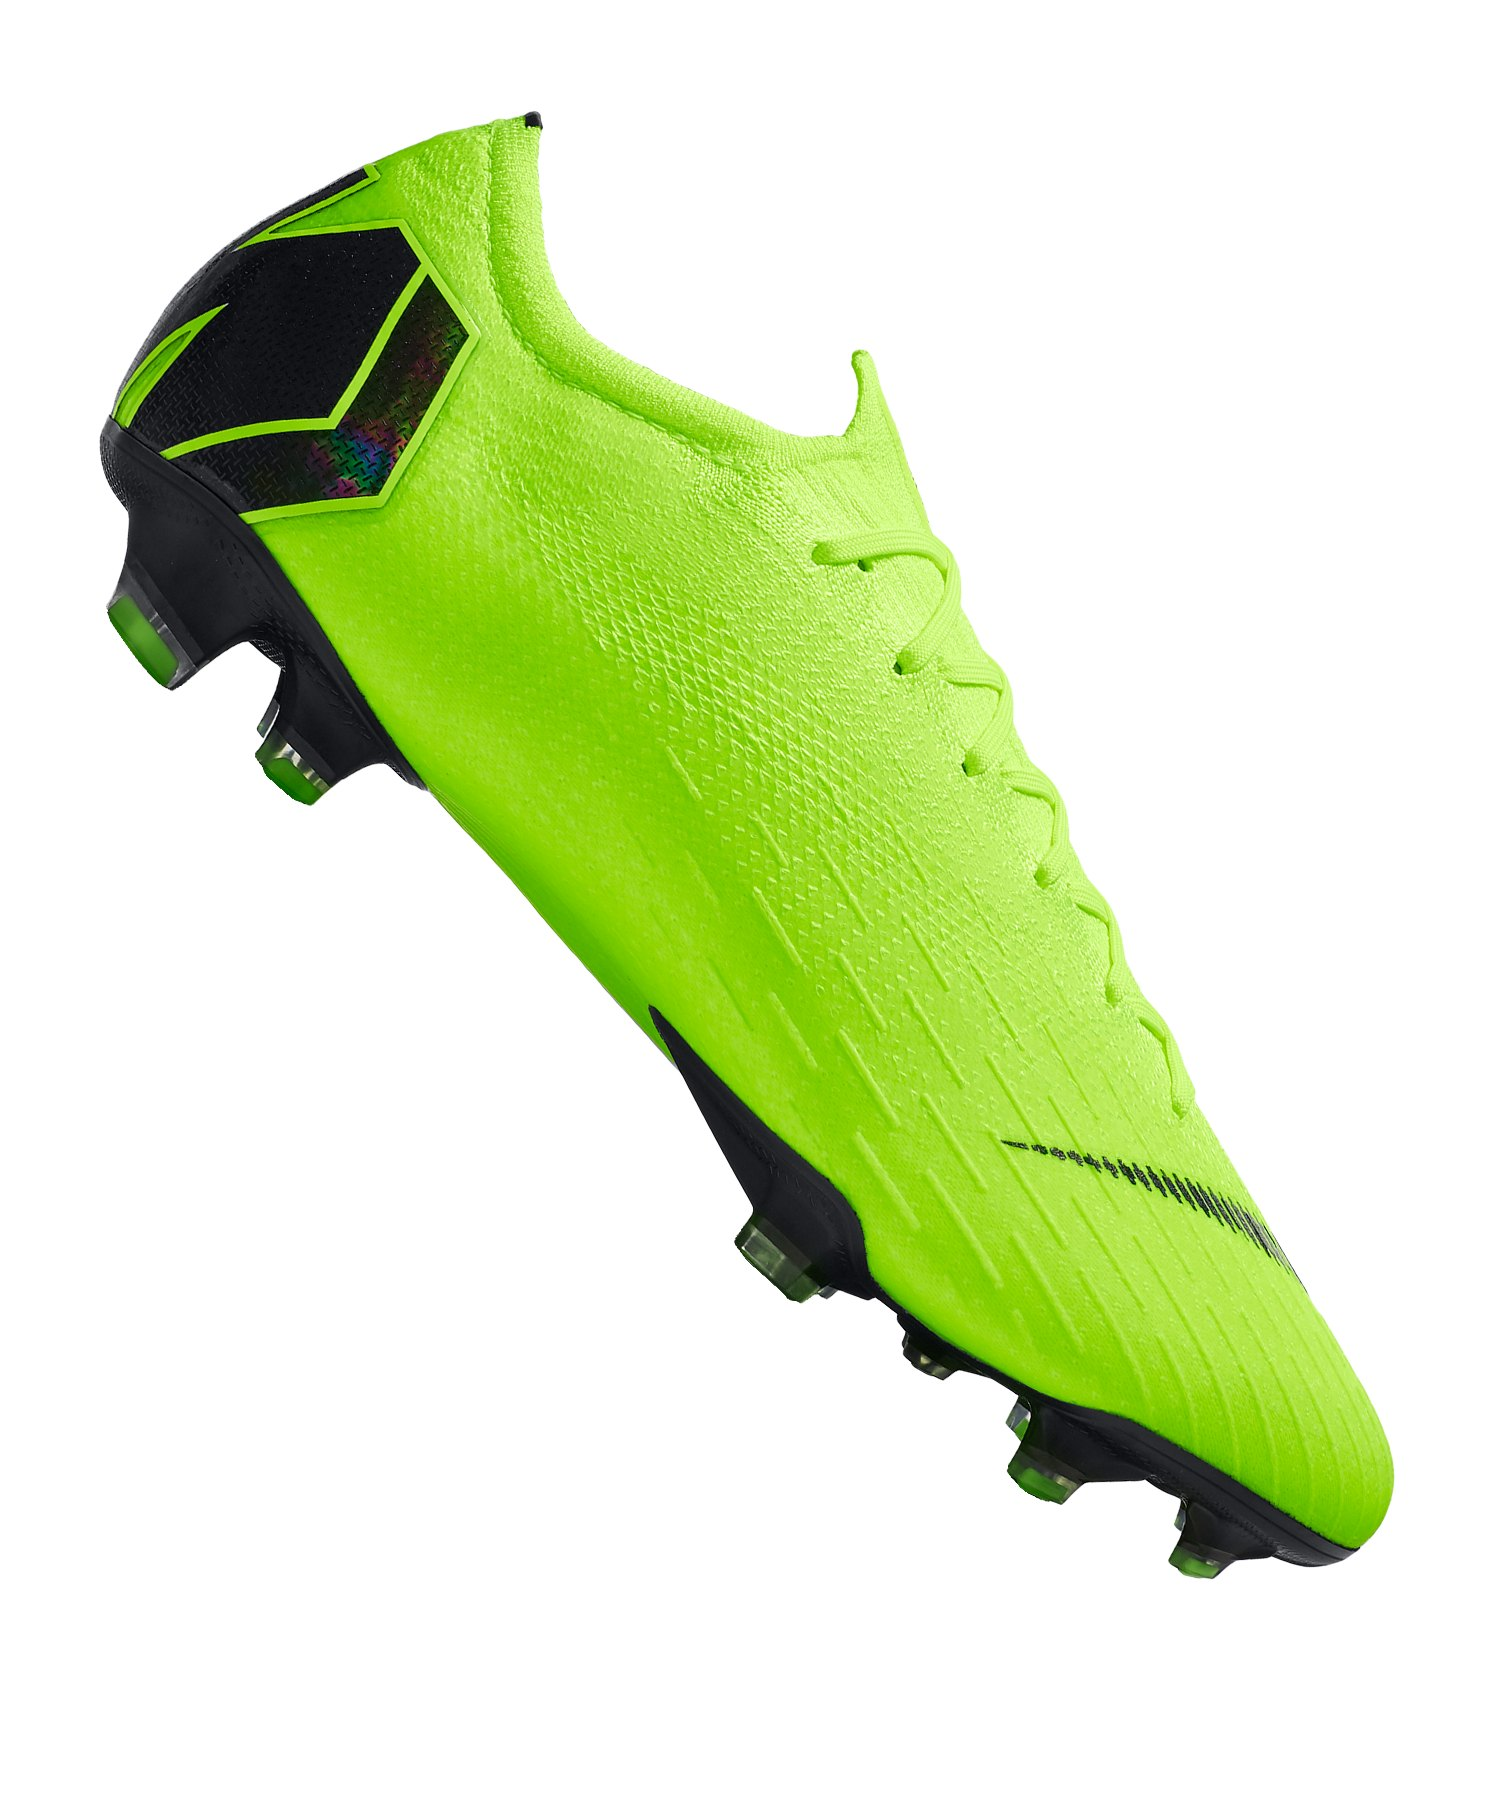 separation shoes 2b42f f1488 Nike Mercurial Vapor XII Elite FG Gelb F701 - gelb